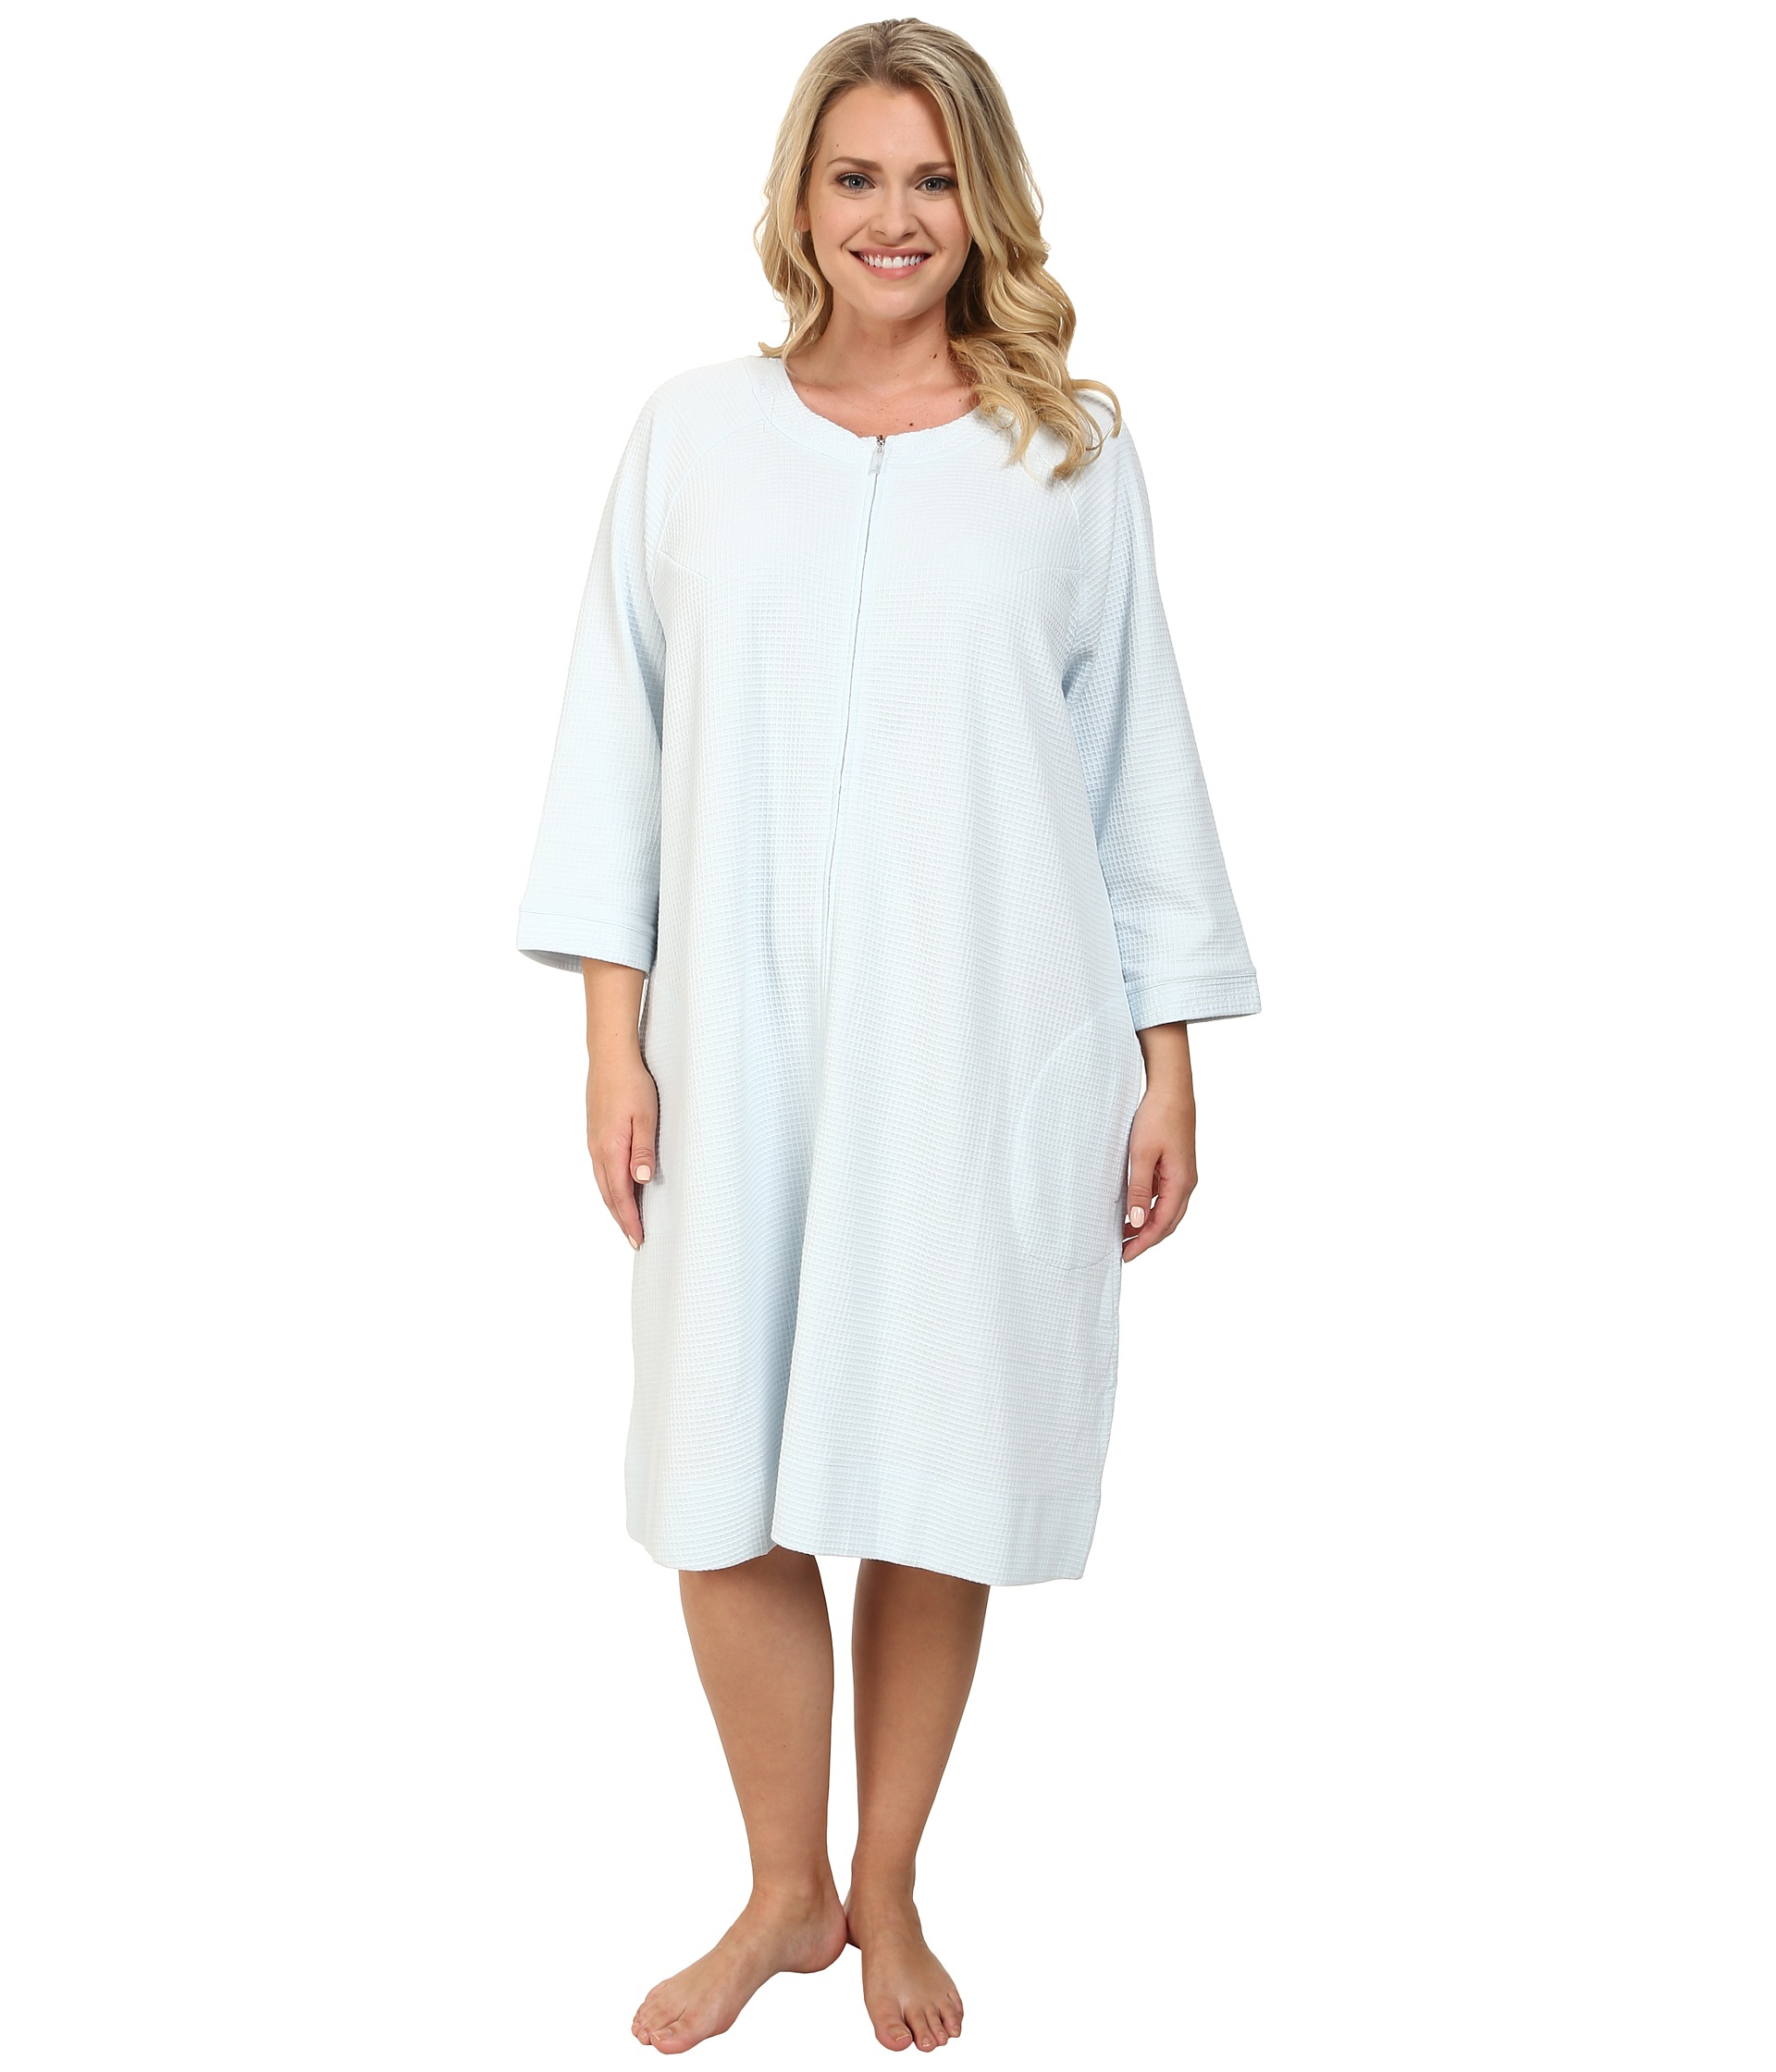 plus size robes with zipper - Anta.expocoaching.co